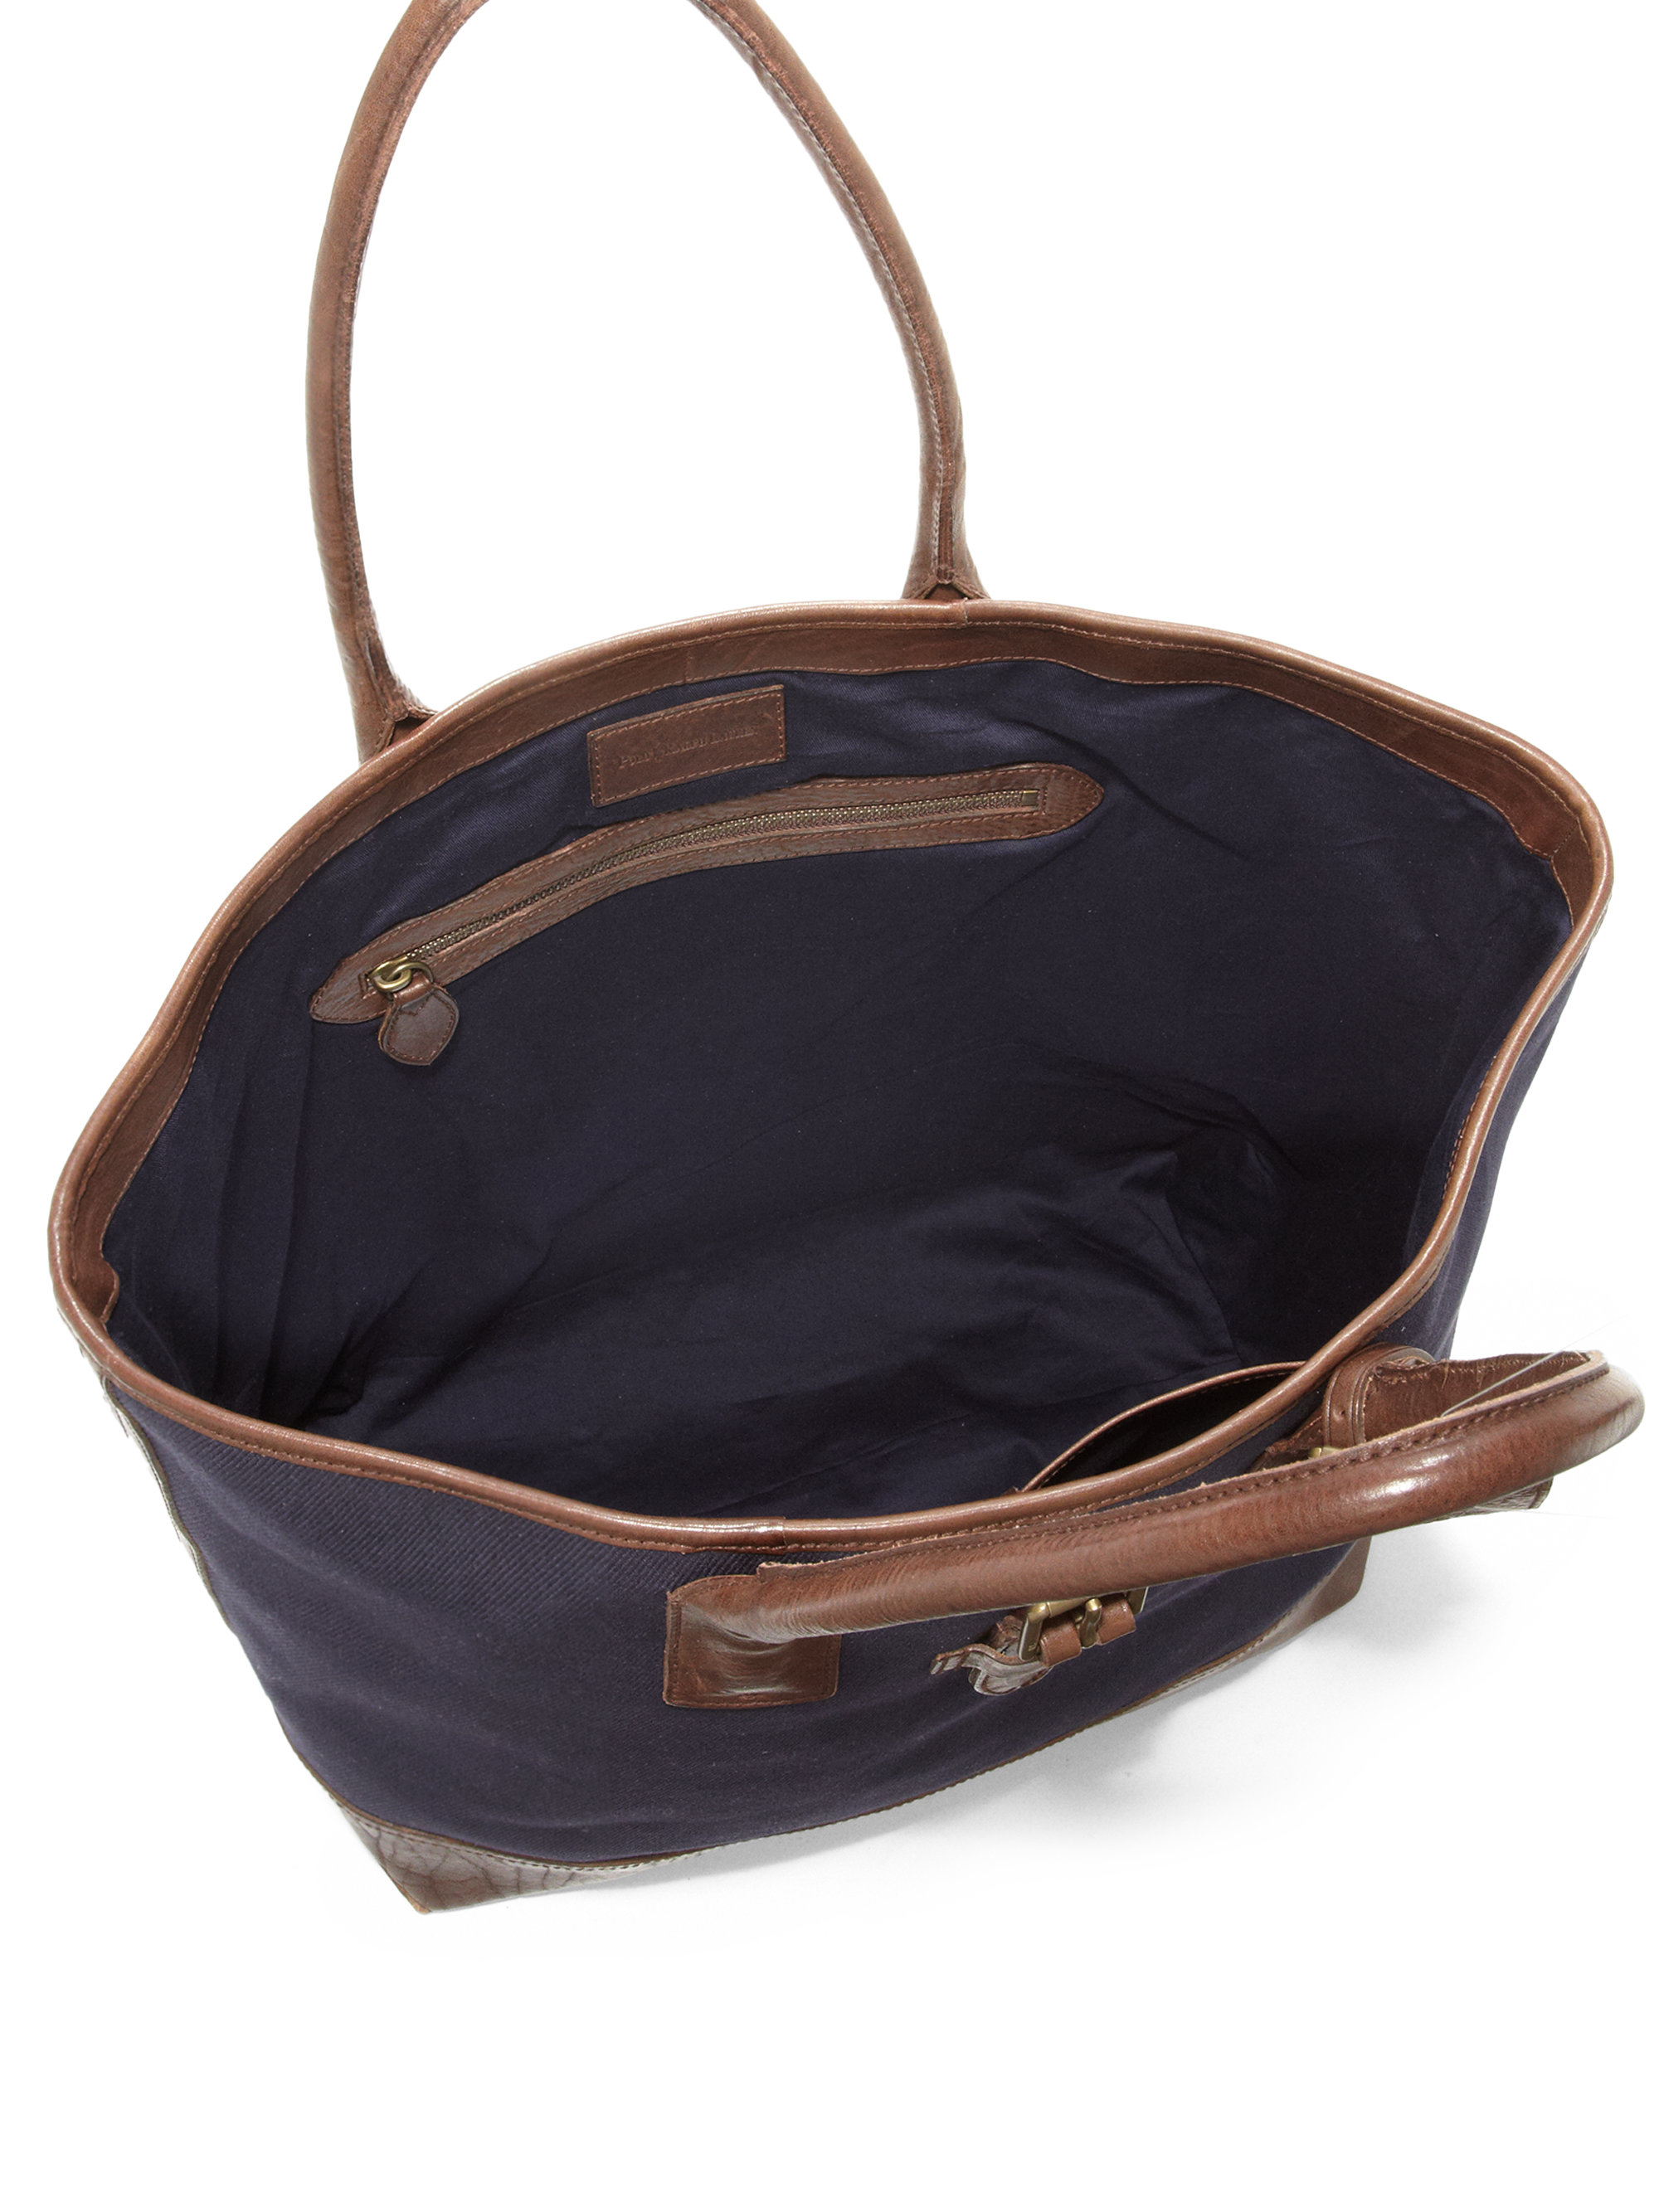 Polo ralph lauren Canvas Black Watch Leather Detail Duffel Bag in Blue for Men | Lyst \u0026middot; Popular Light Longchamp Travel Bags 1630 737 545 ROSSO(Rouge)